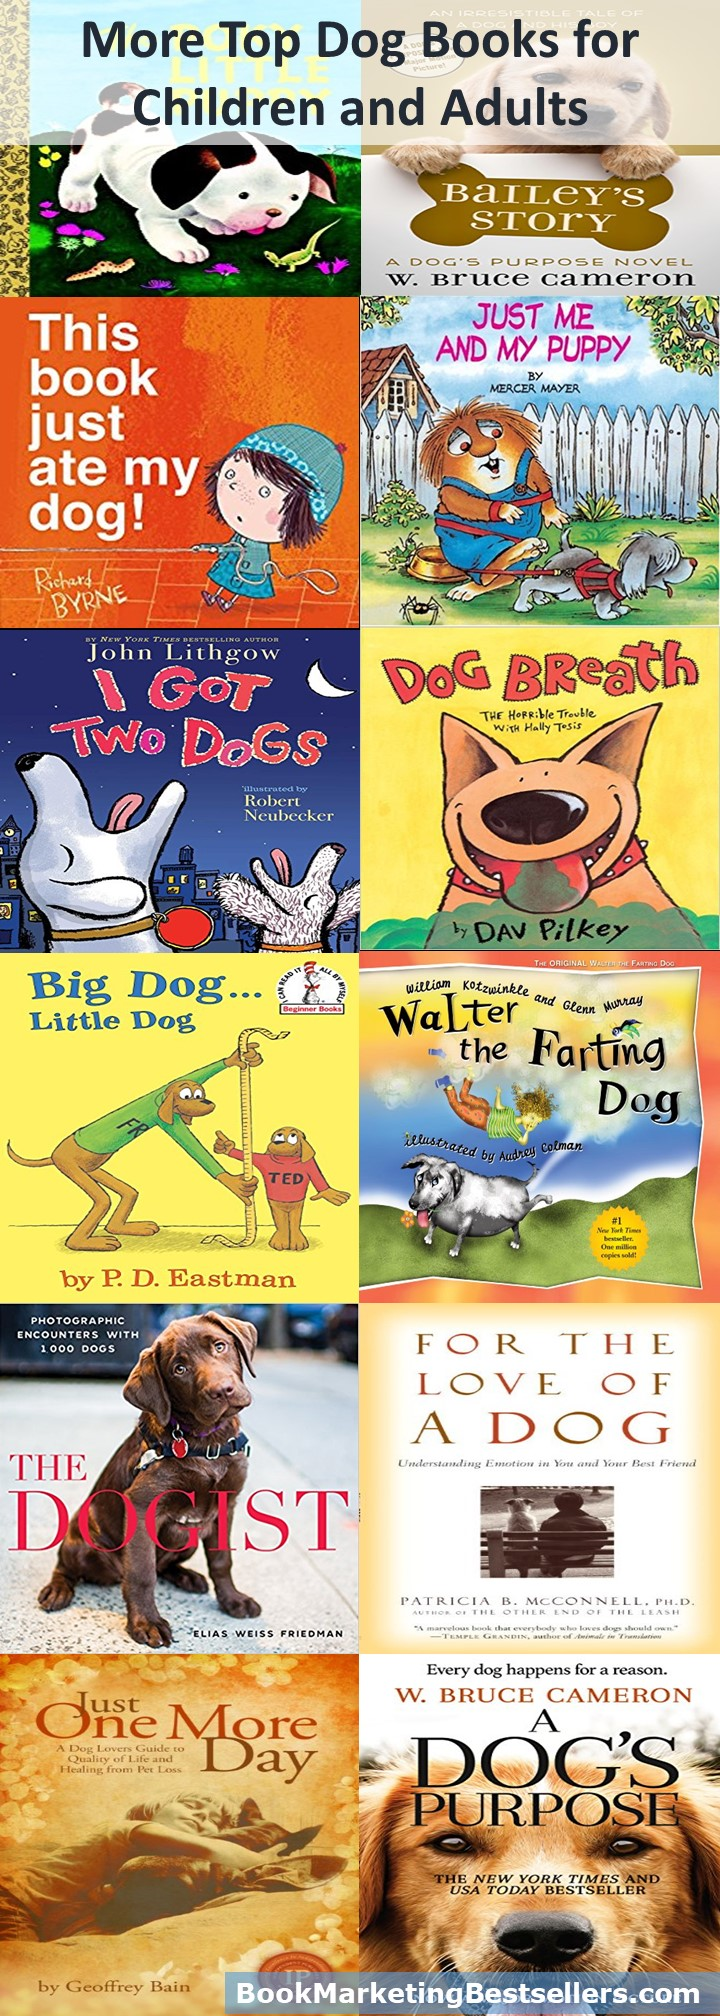 Top Doggie Books